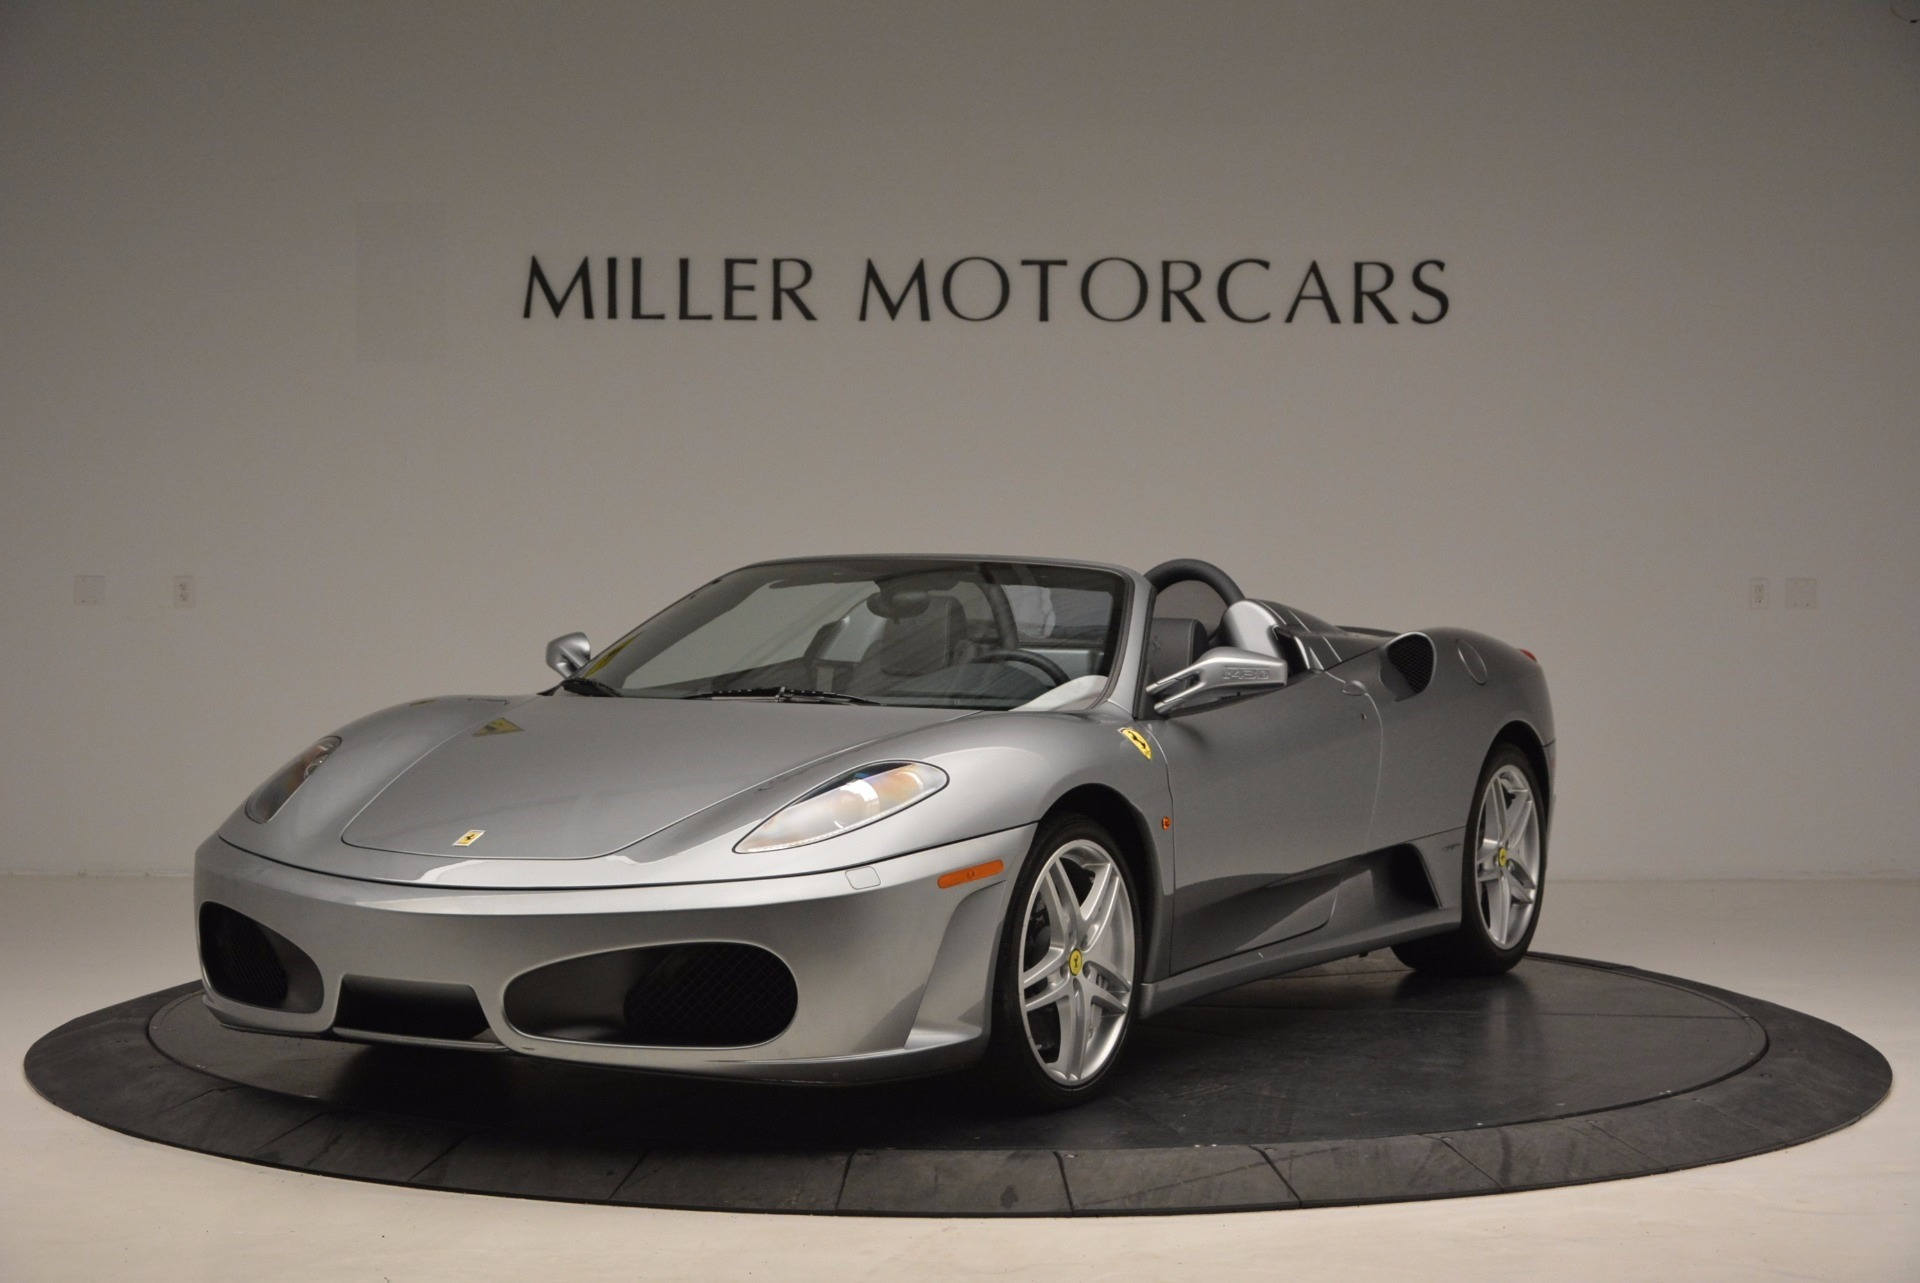 Used 2007 Ferrari F430 Spider for sale $121,900 at Bentley Greenwich in Greenwich CT 06830 1